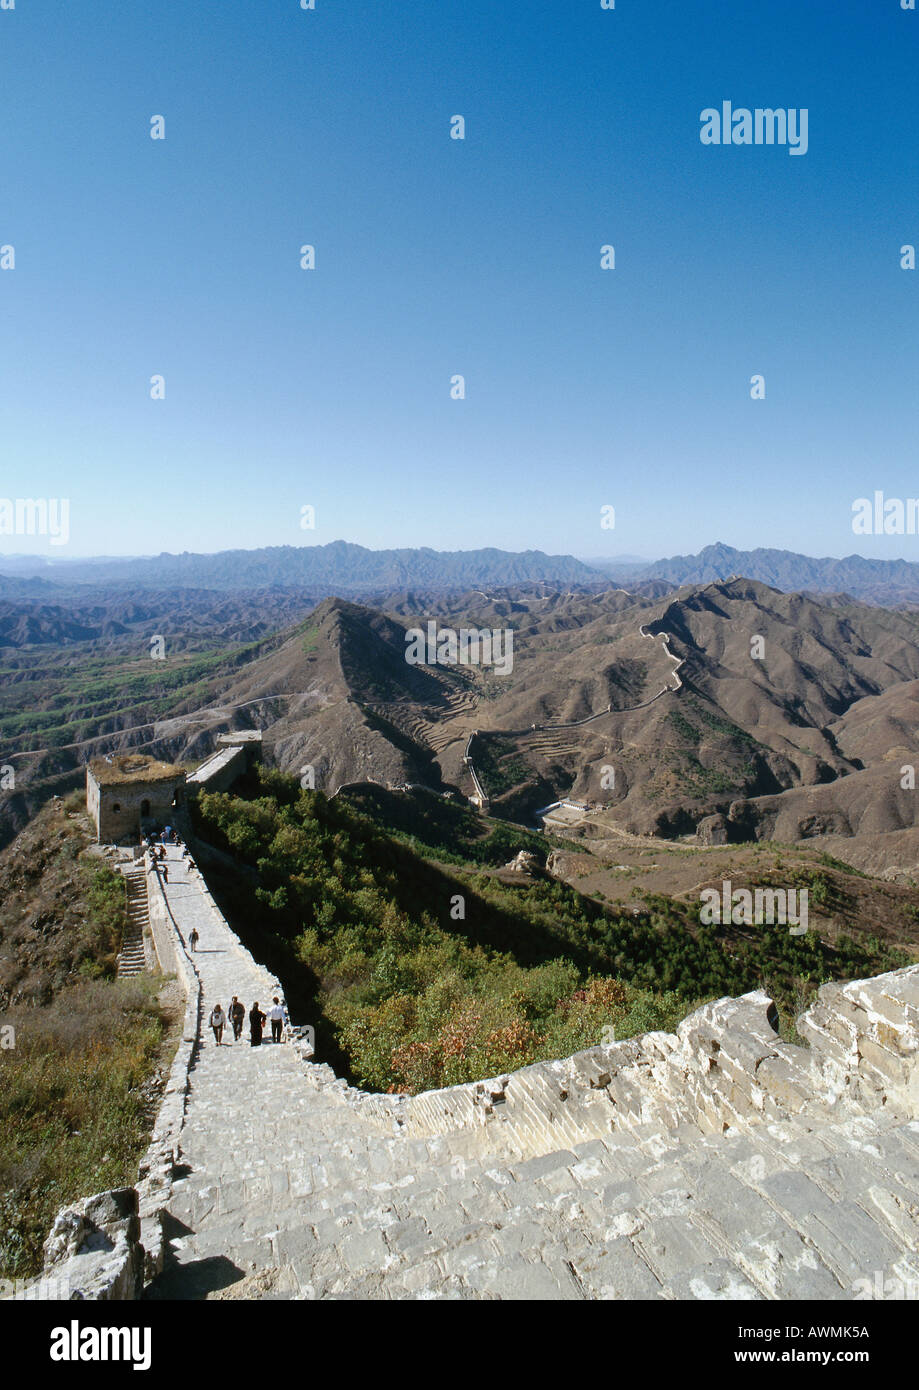 China, Hebei Province, Simatai, people walking on the Great Wall, high angle view Stock Photo